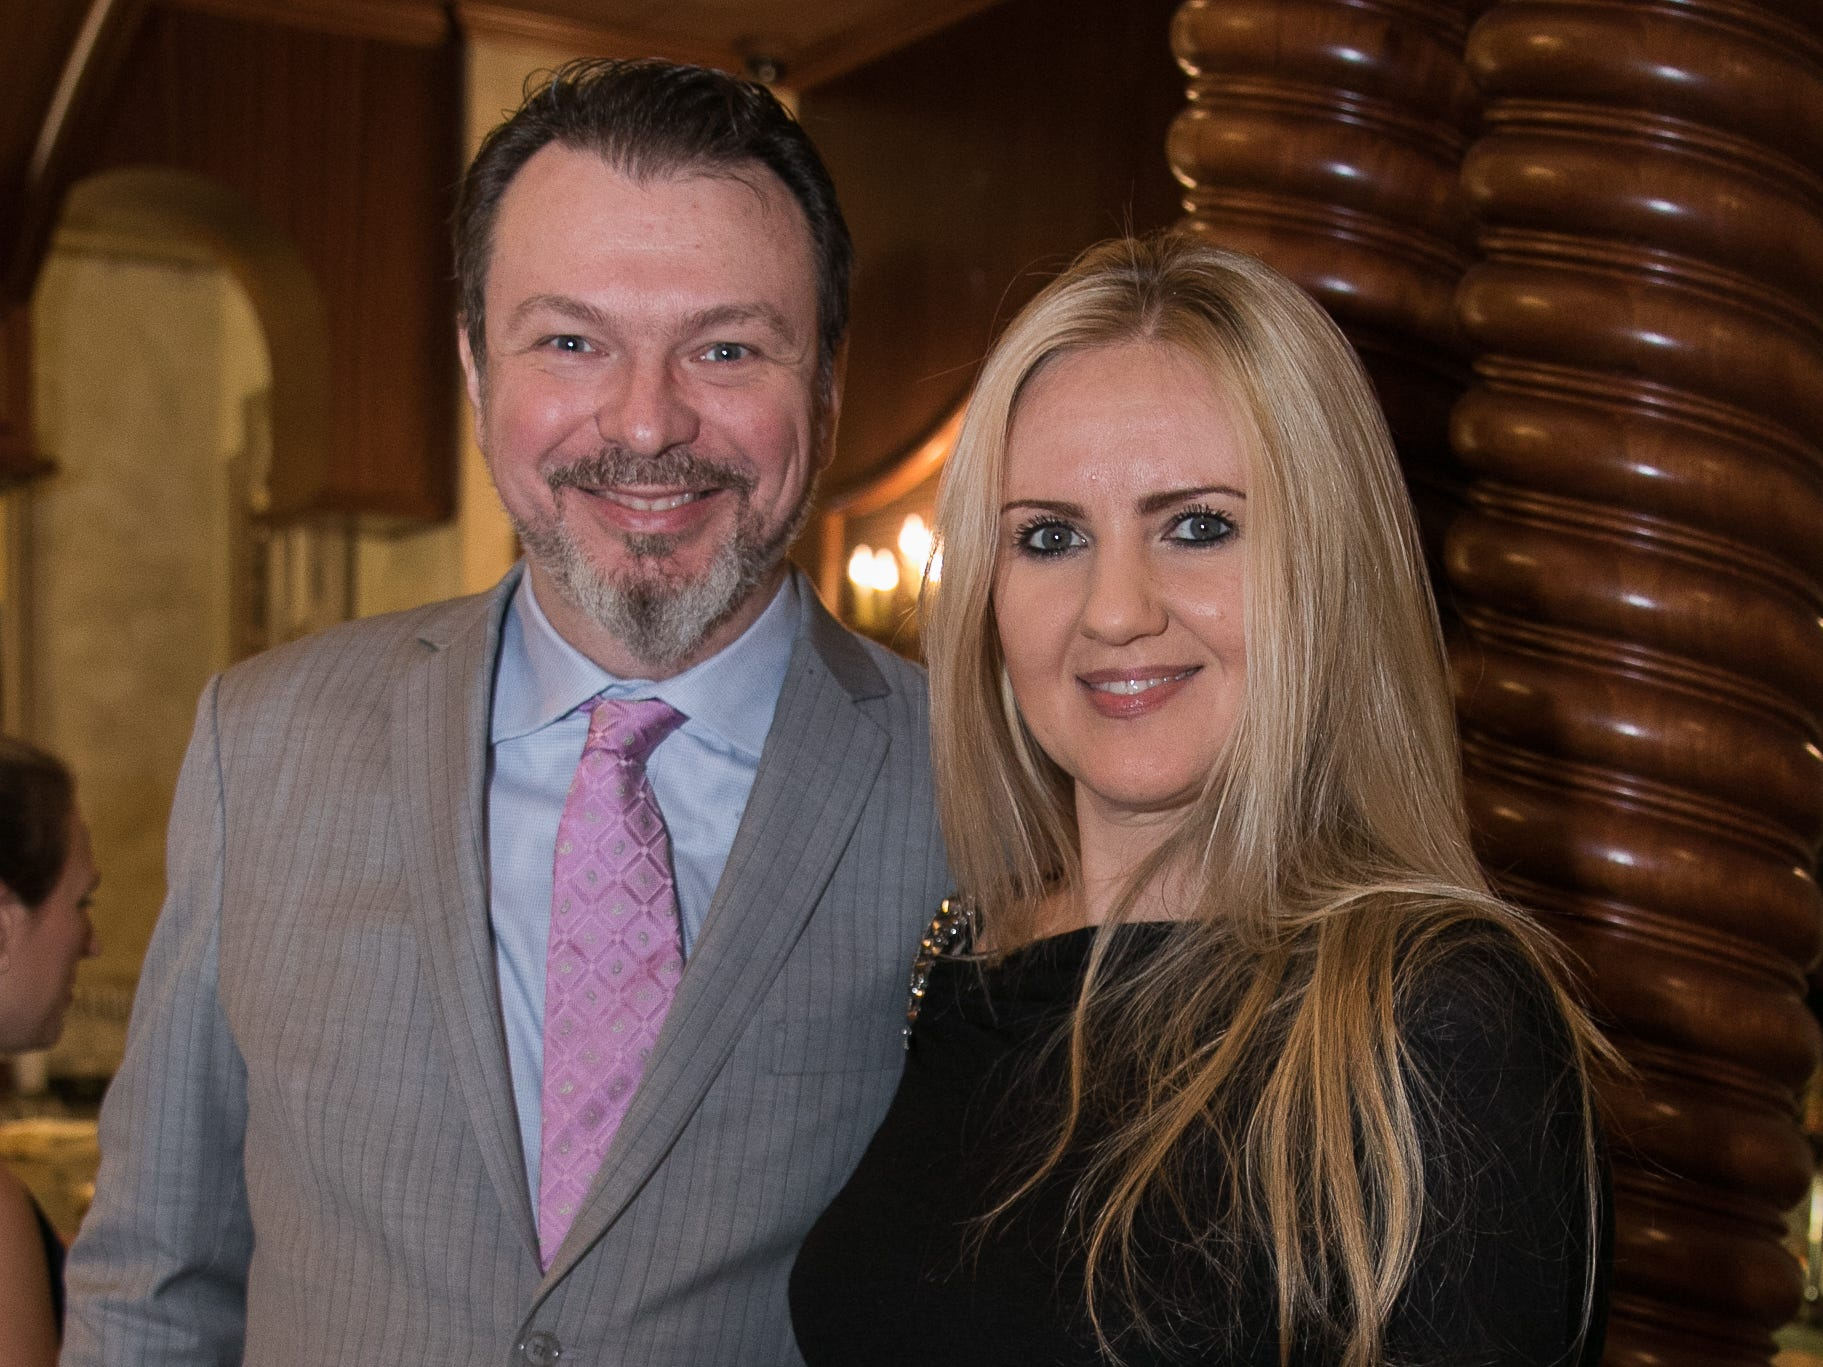 Ryan and Elena McGonigle. Don Bosco Prep held it's 17th Annual President's Gala at The Venitian in Garfield, NJ. 10/25/2018